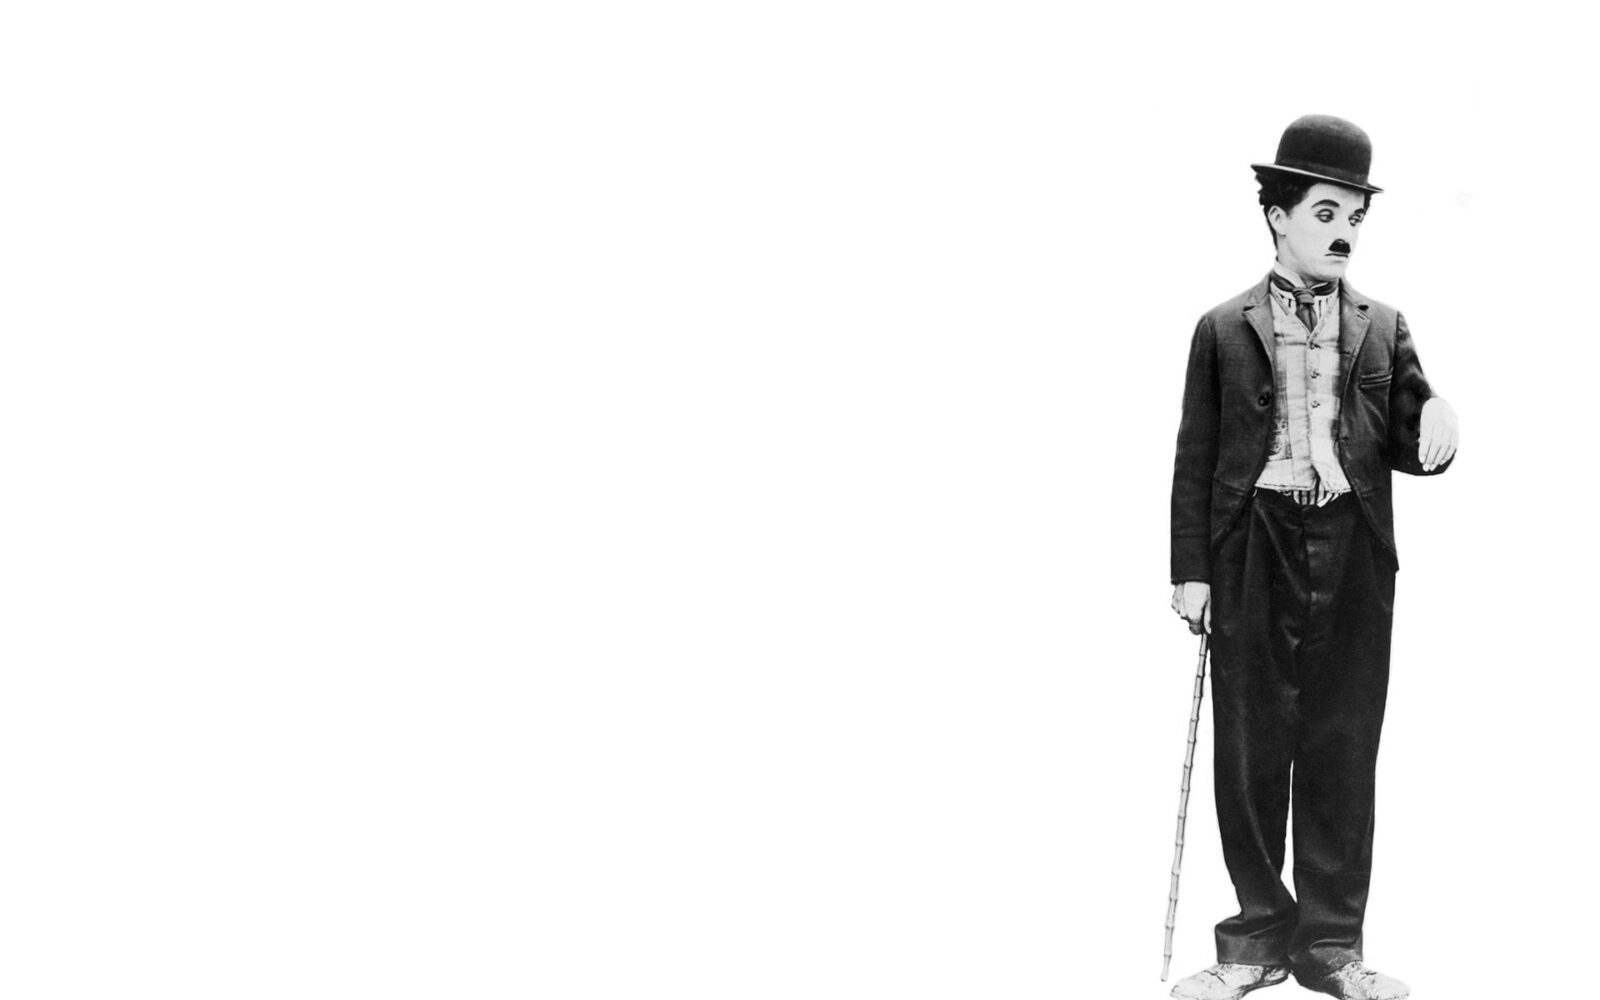 Charles Chaplin HD wallpapers free Download